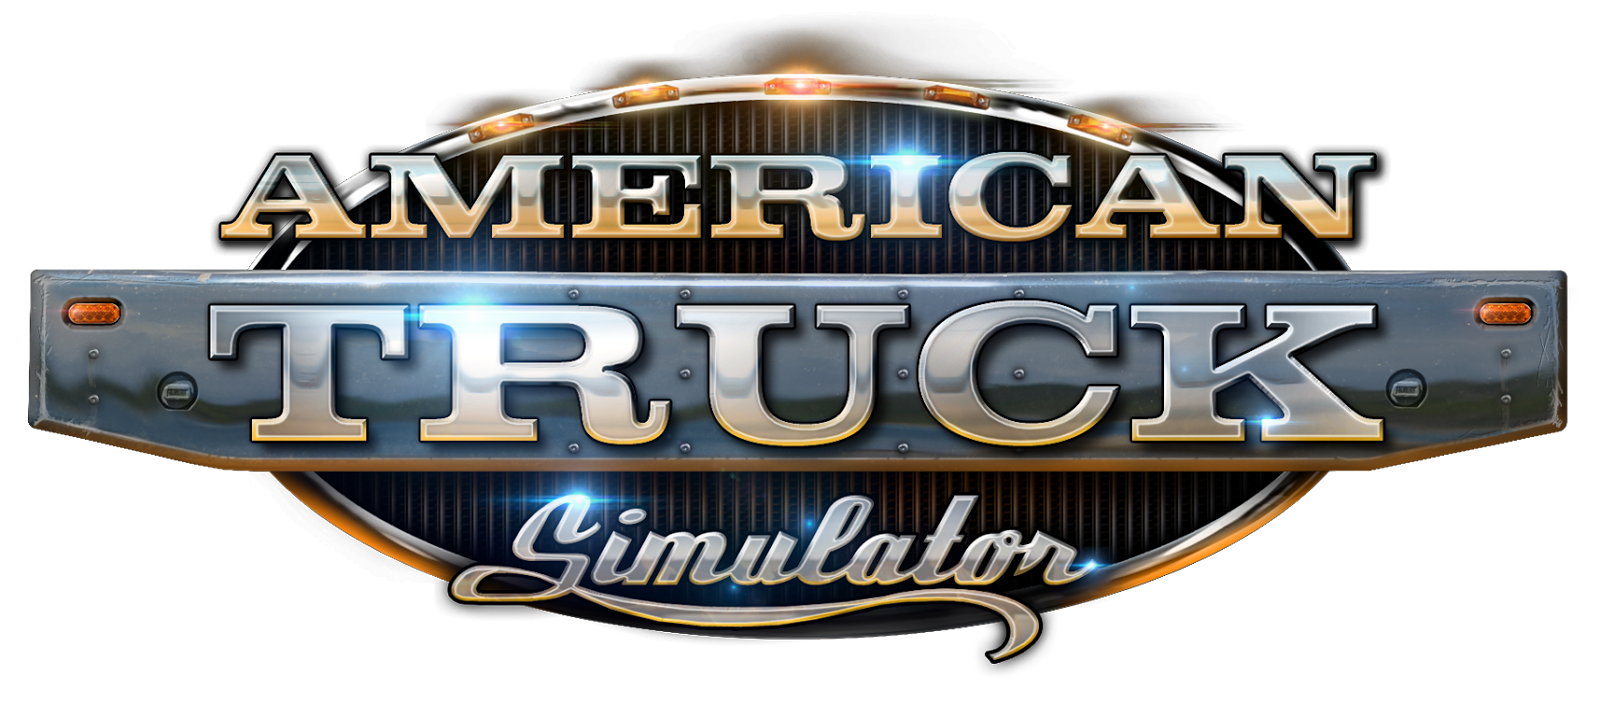 American truck simulator logo png. East bound and down